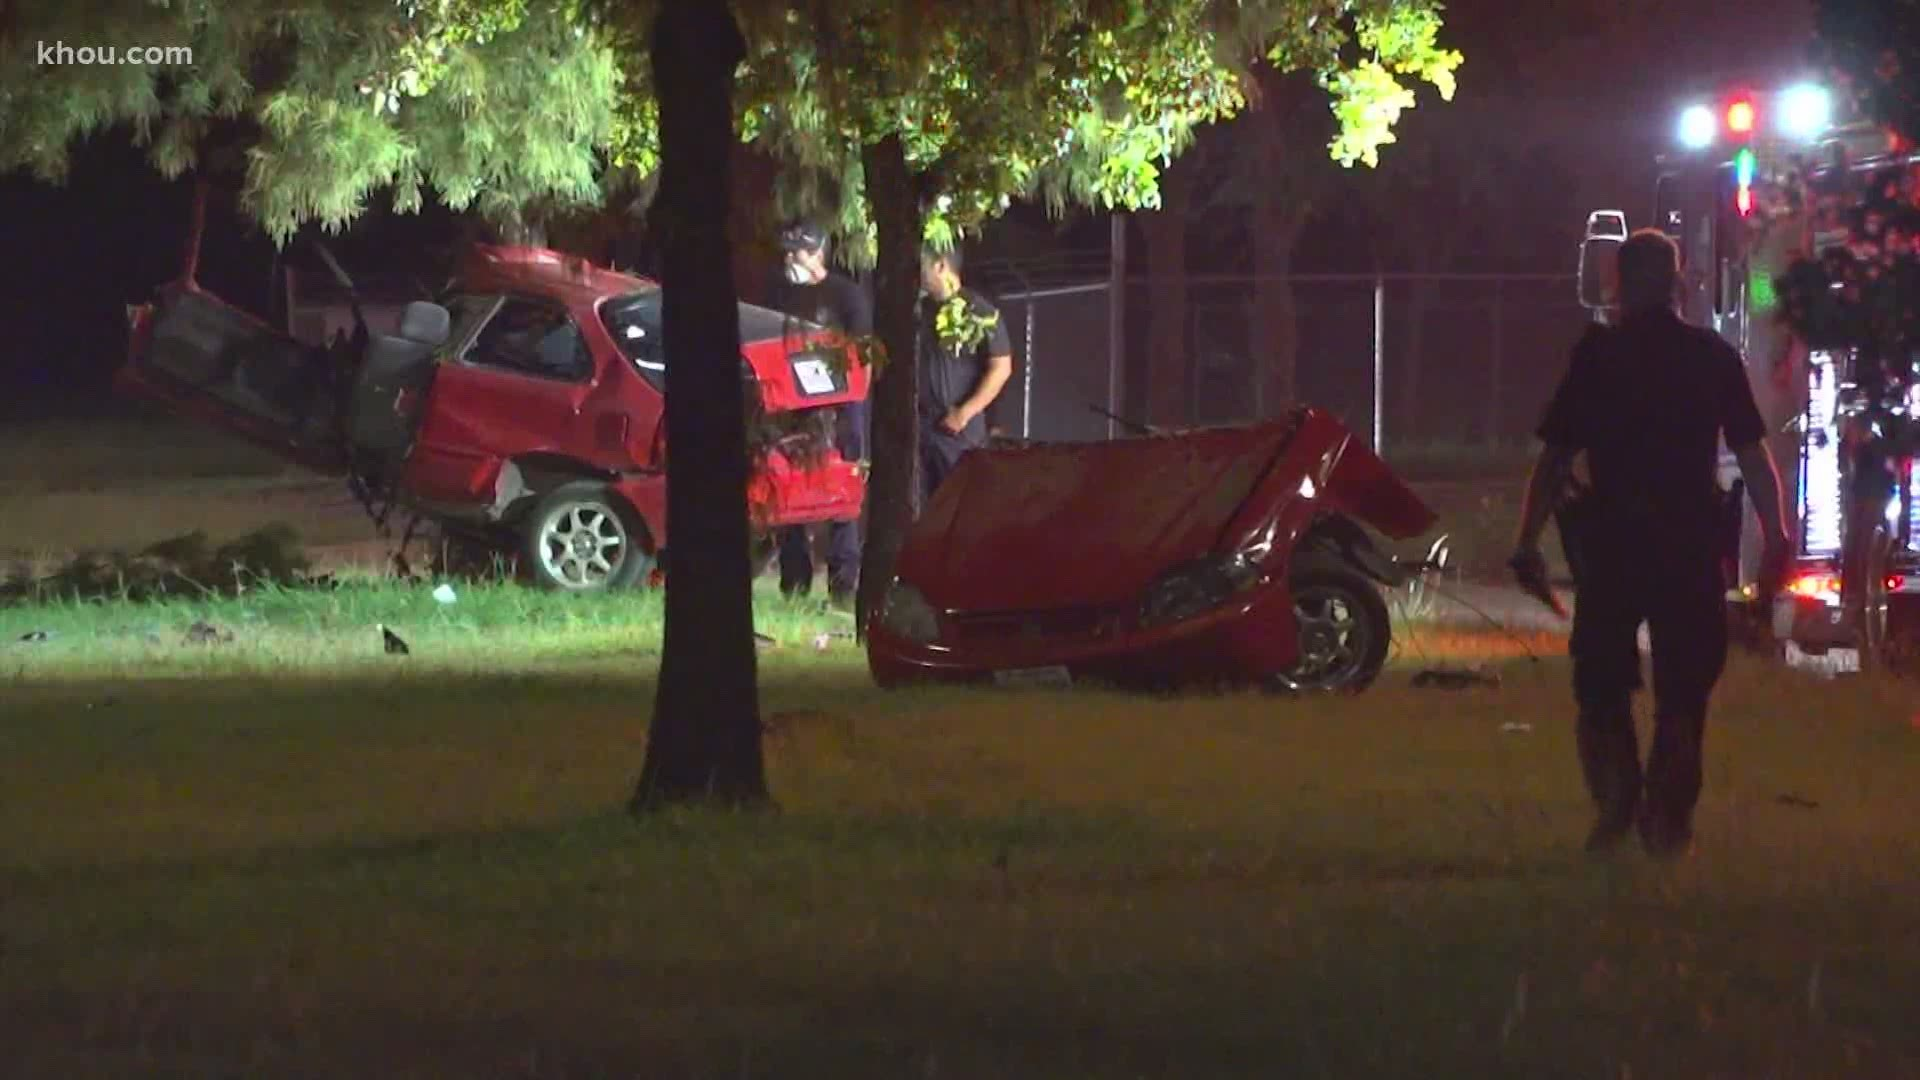 Alleged Street Racer Dead After Car Splits In Half During Crash Khou Com